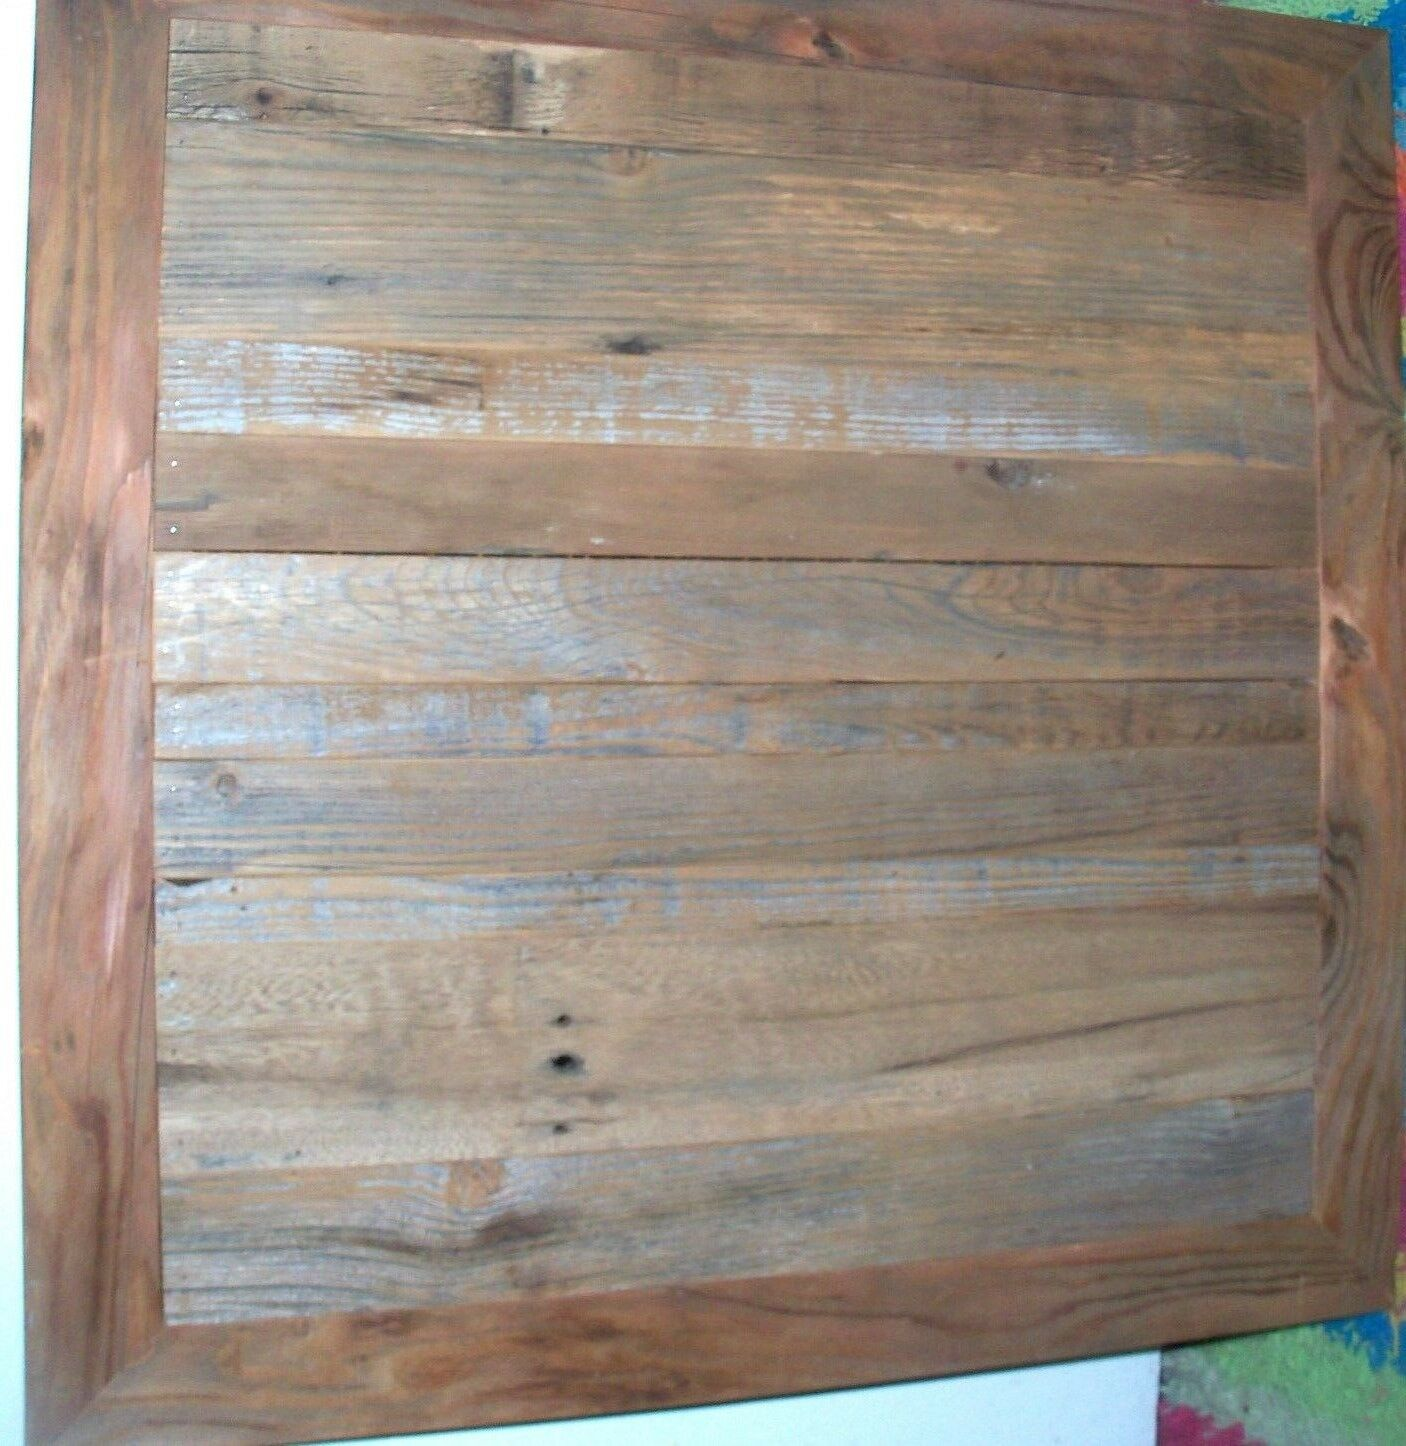 Reclaimed Barn Wood Table Top 30x30 Urban Rustic Restaurant Modern ...